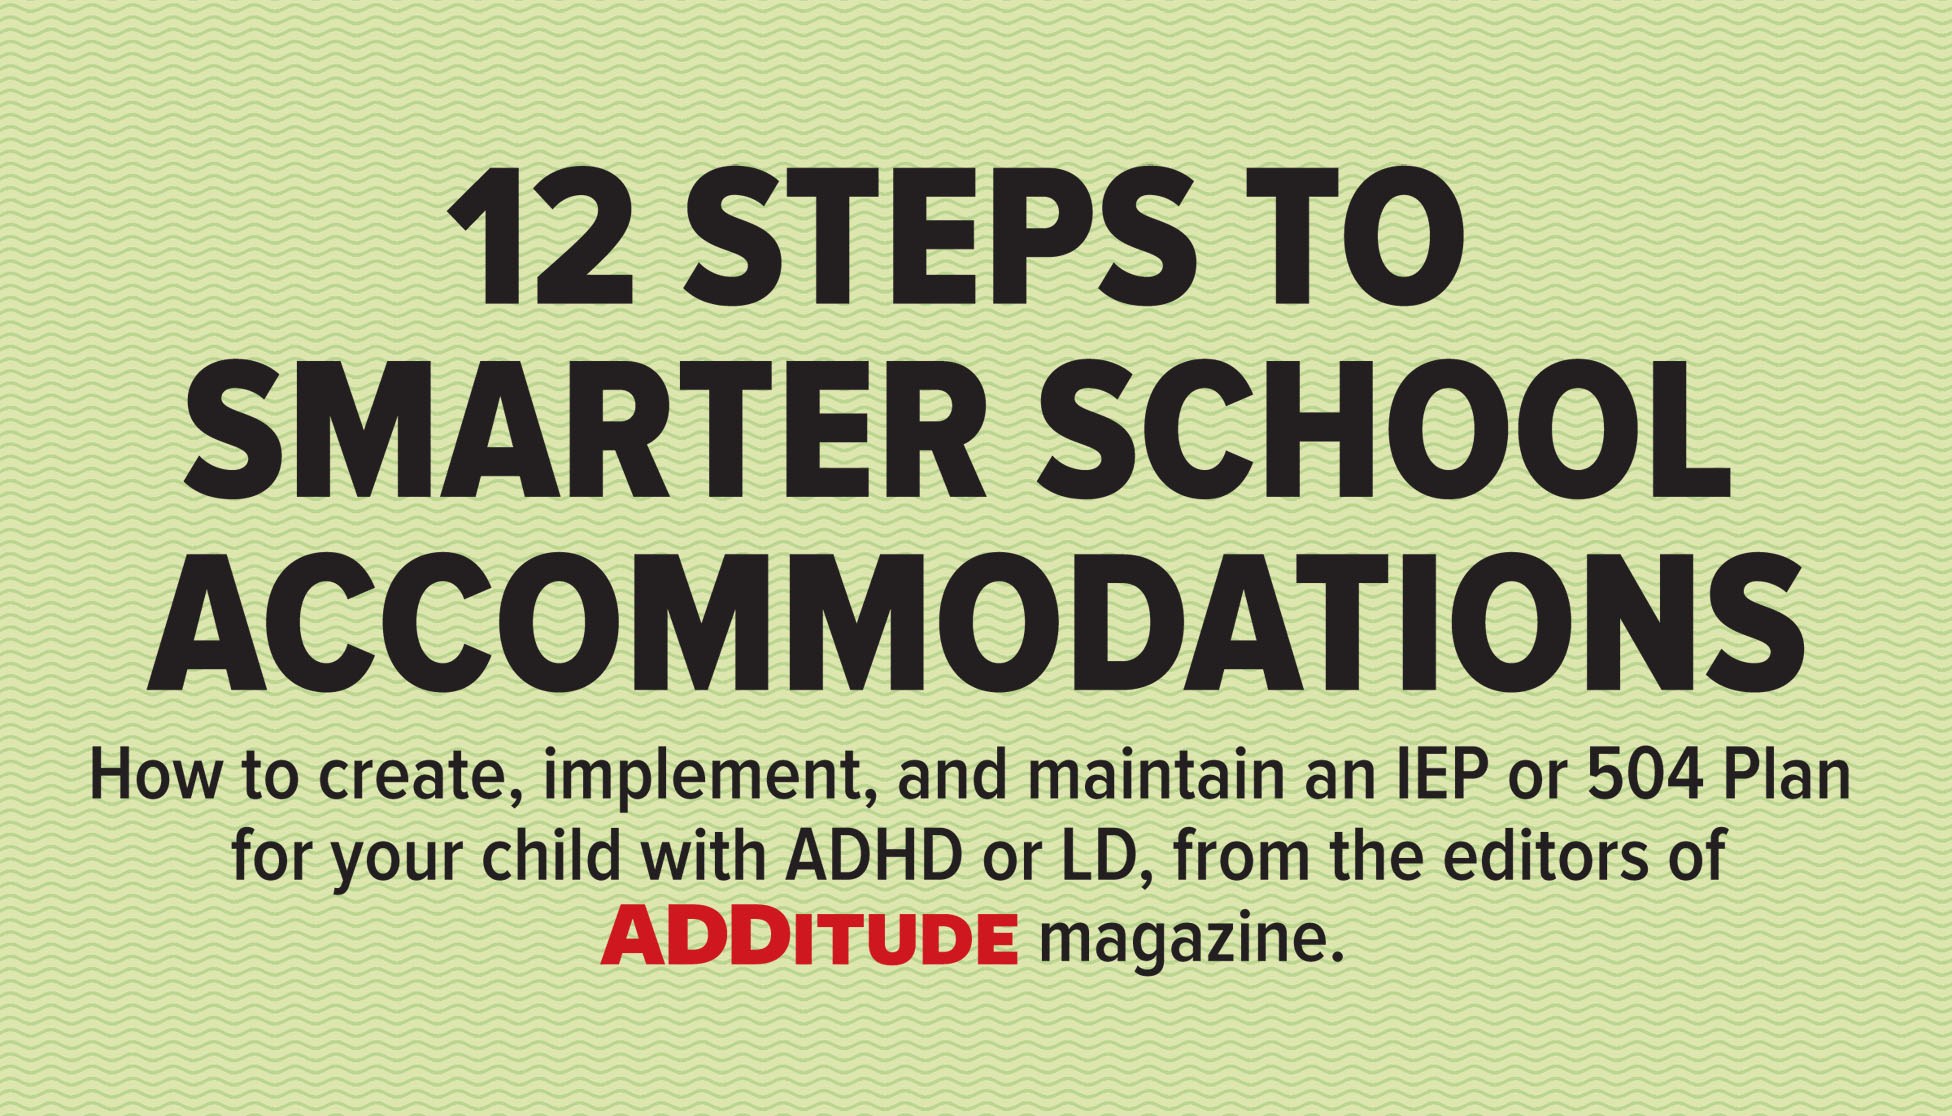 Iep Planning Accommodations And >> How To Get A 504 Plan Adhd School Accommodations